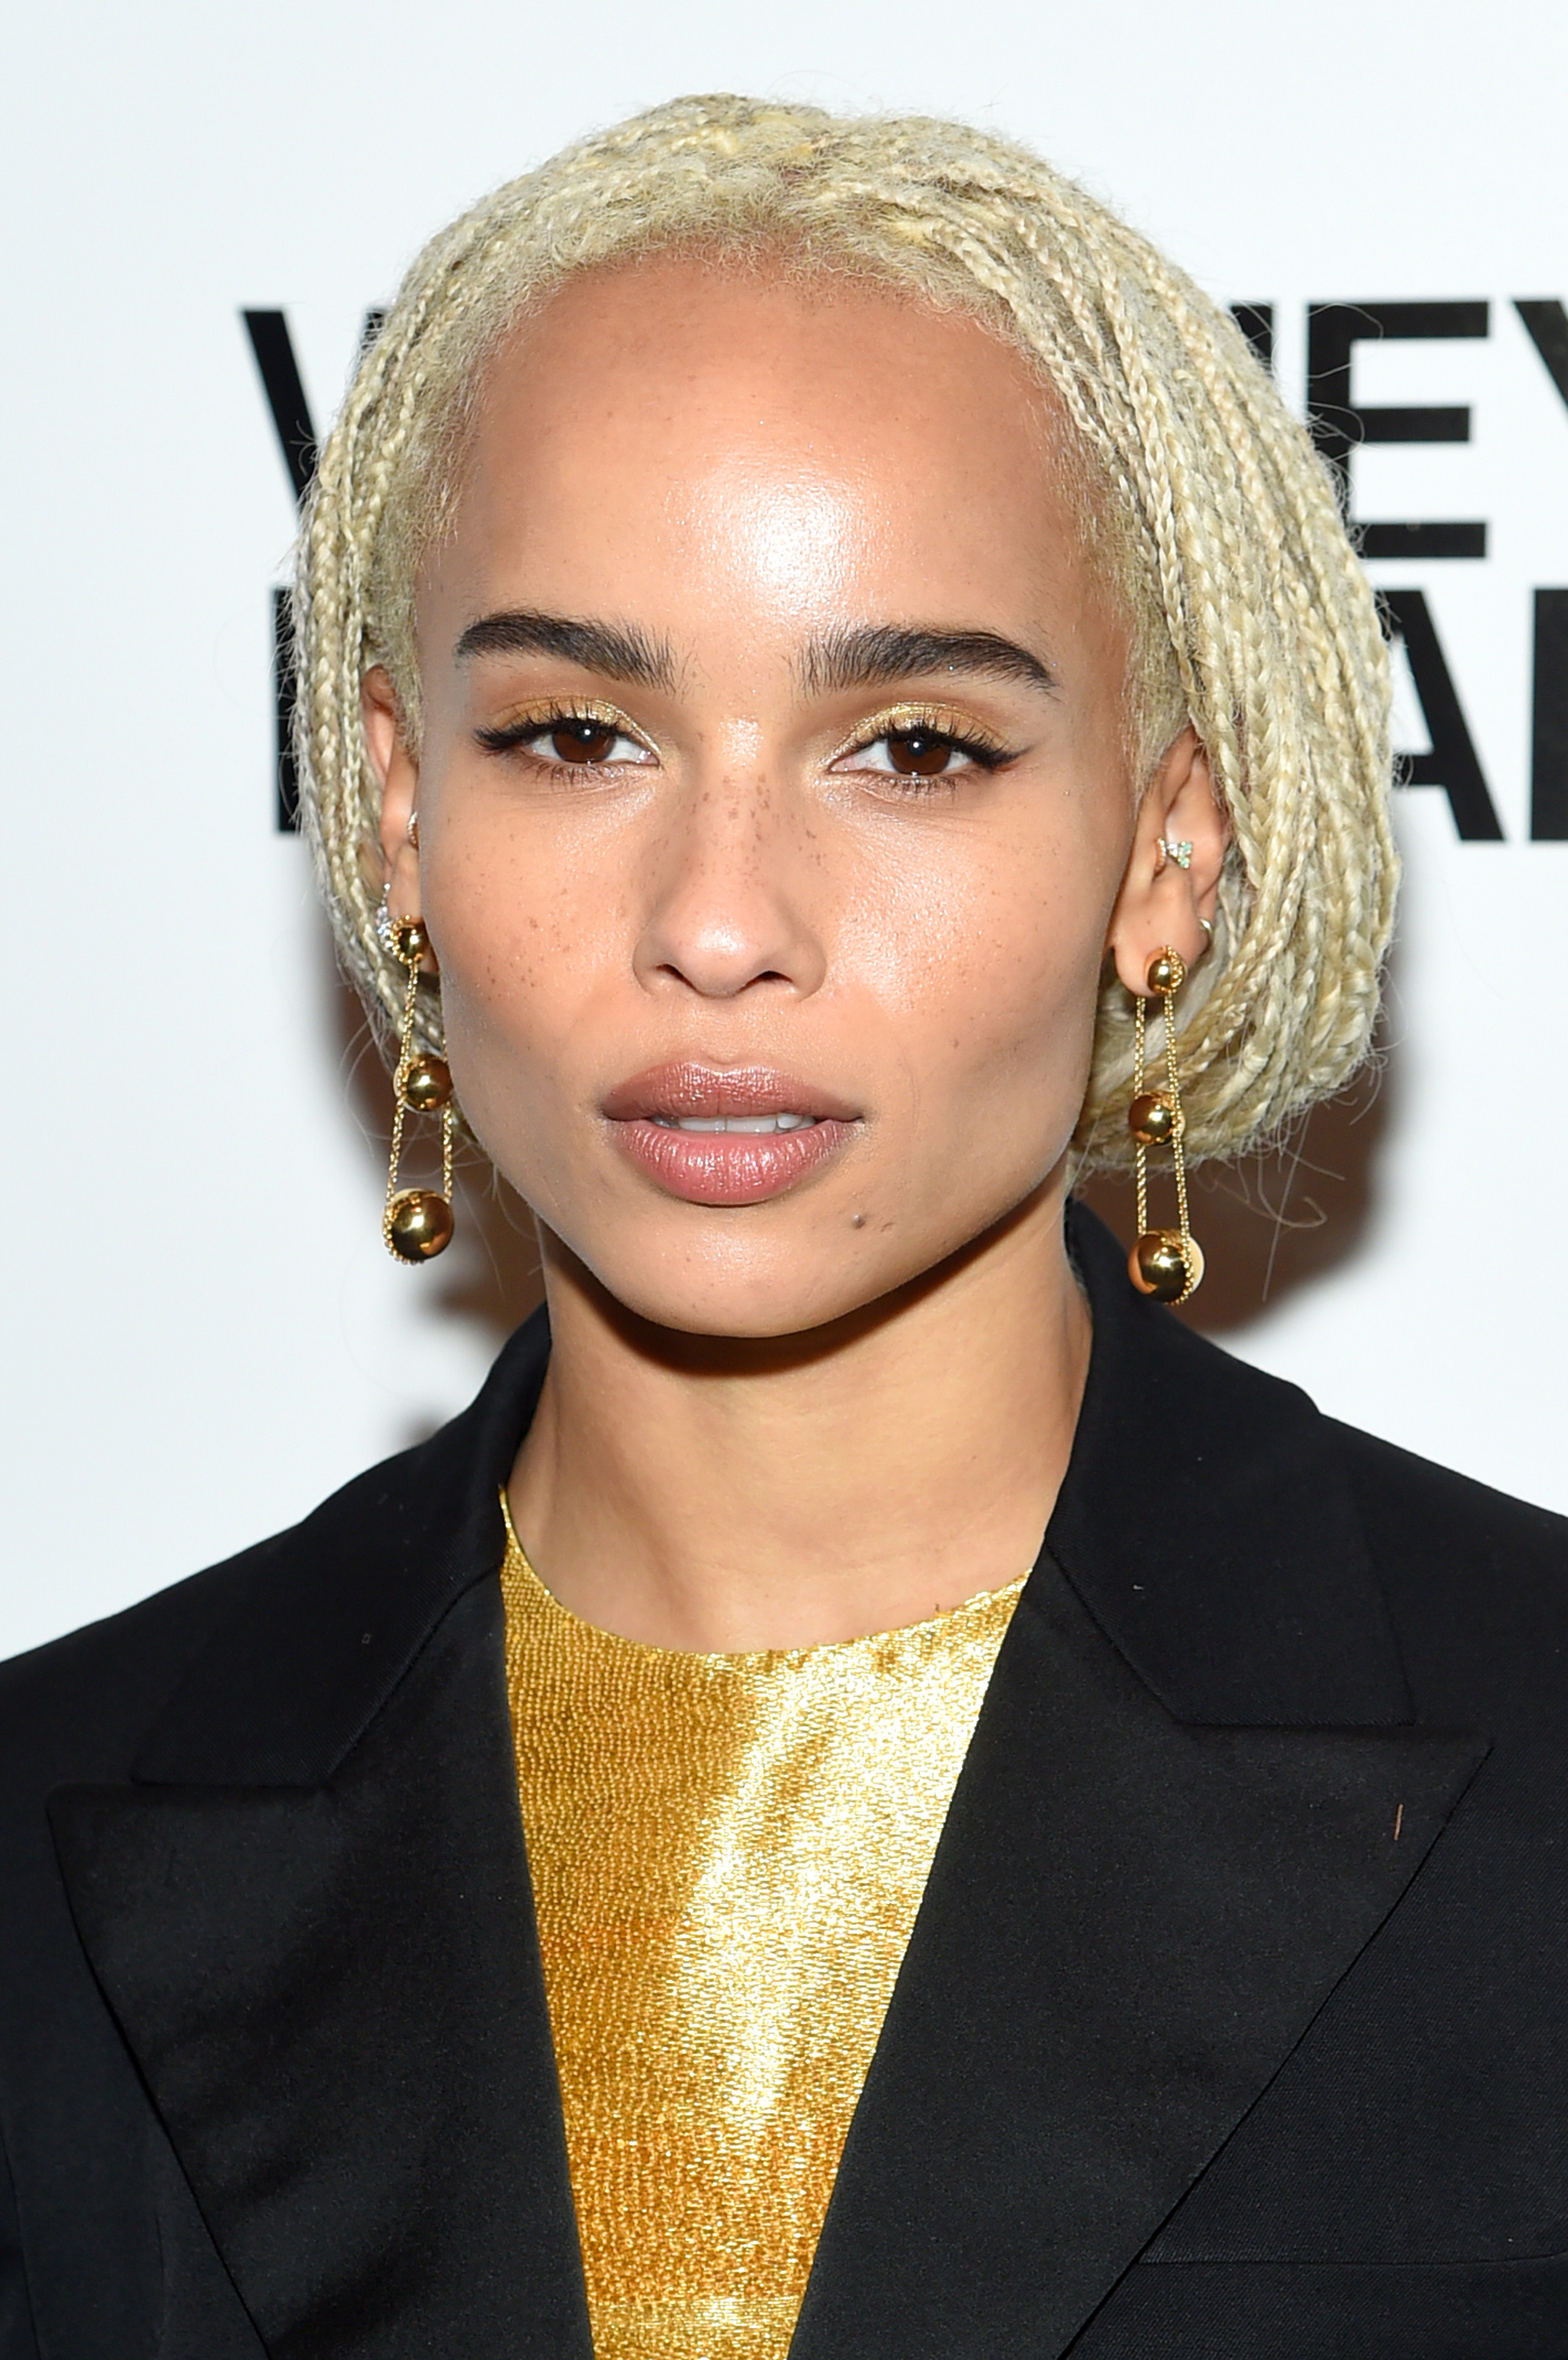 """<p> Actress <a href=""""http://style.nine.com.au/2016/01/19/09/56/zoe-kravtiz-style-file-2016"""" target=""""_blank"""" draggable=""""false"""">Zoë Kravitz</a>has inherited her father Lenny Kravitz's rock star attitude, especially when it comes to her hair. The <em>Big Little Lies</em> stars latest cut might be her boldest move yet, debuting a daring platinum blonde and on –trend  buzz cut via her <a href=""""https://www.instagram.com/zoeisabellakravitz/?hl=en"""" target=""""_blank"""" draggable=""""false"""">Instagram account</a>.</p> <p>The<em></em>part-time musicianteased her new look by first posting a photo of a pile of blonde hair on the floor, captioning it """"Oh sh*t part 1."""" After what seemed like hours of anticipation, Zoe finally posted a selfie of her new hair with the hashtags #new look# and #whodis#.</p> <p>Zoë'snew look may  solidify her status at the queen of cool when it comes to making major hair moves (sorry <a href=""""https://style.nine.com.au/2017/04/05/09/23/style_micro-blading-top-five-tips"""" target=""""_blank"""" draggable=""""false"""">Bella Thorne</a>). The actress has previously rocked long braids, cornrows, and platinum blonde locks, but we think this is our favourite look from her yet.</p> <p> Click through to see Zoë's dramatic transformation and the looks from other celebrities who have also recently made dramatic hair changes.</p>"""